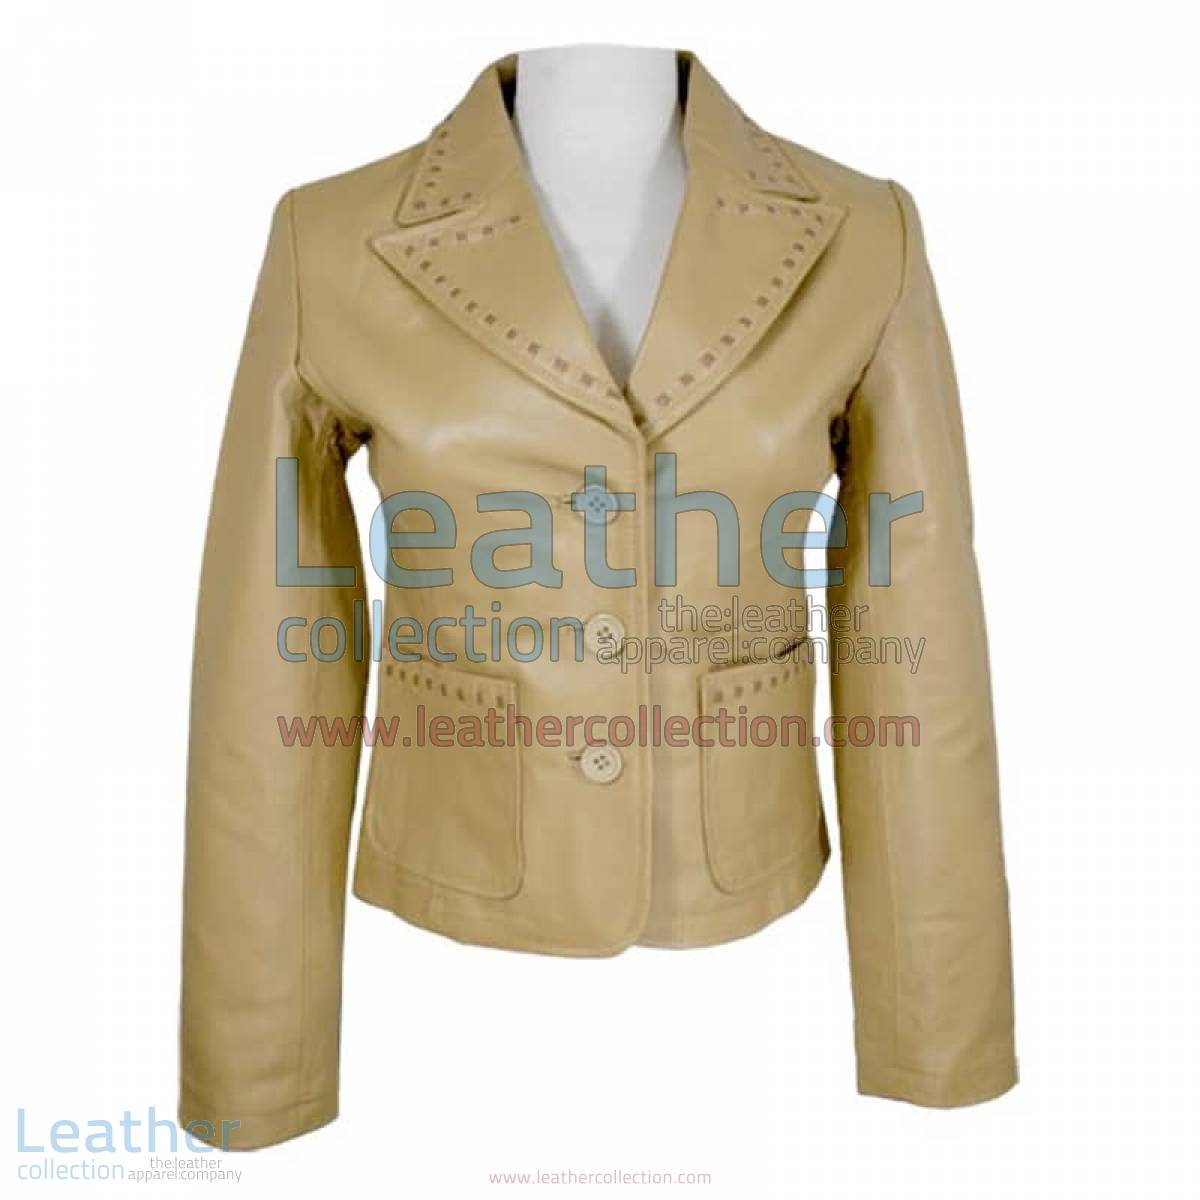 Ladies Fashion Camel Colored Coat | camel colored coat,fashion coat